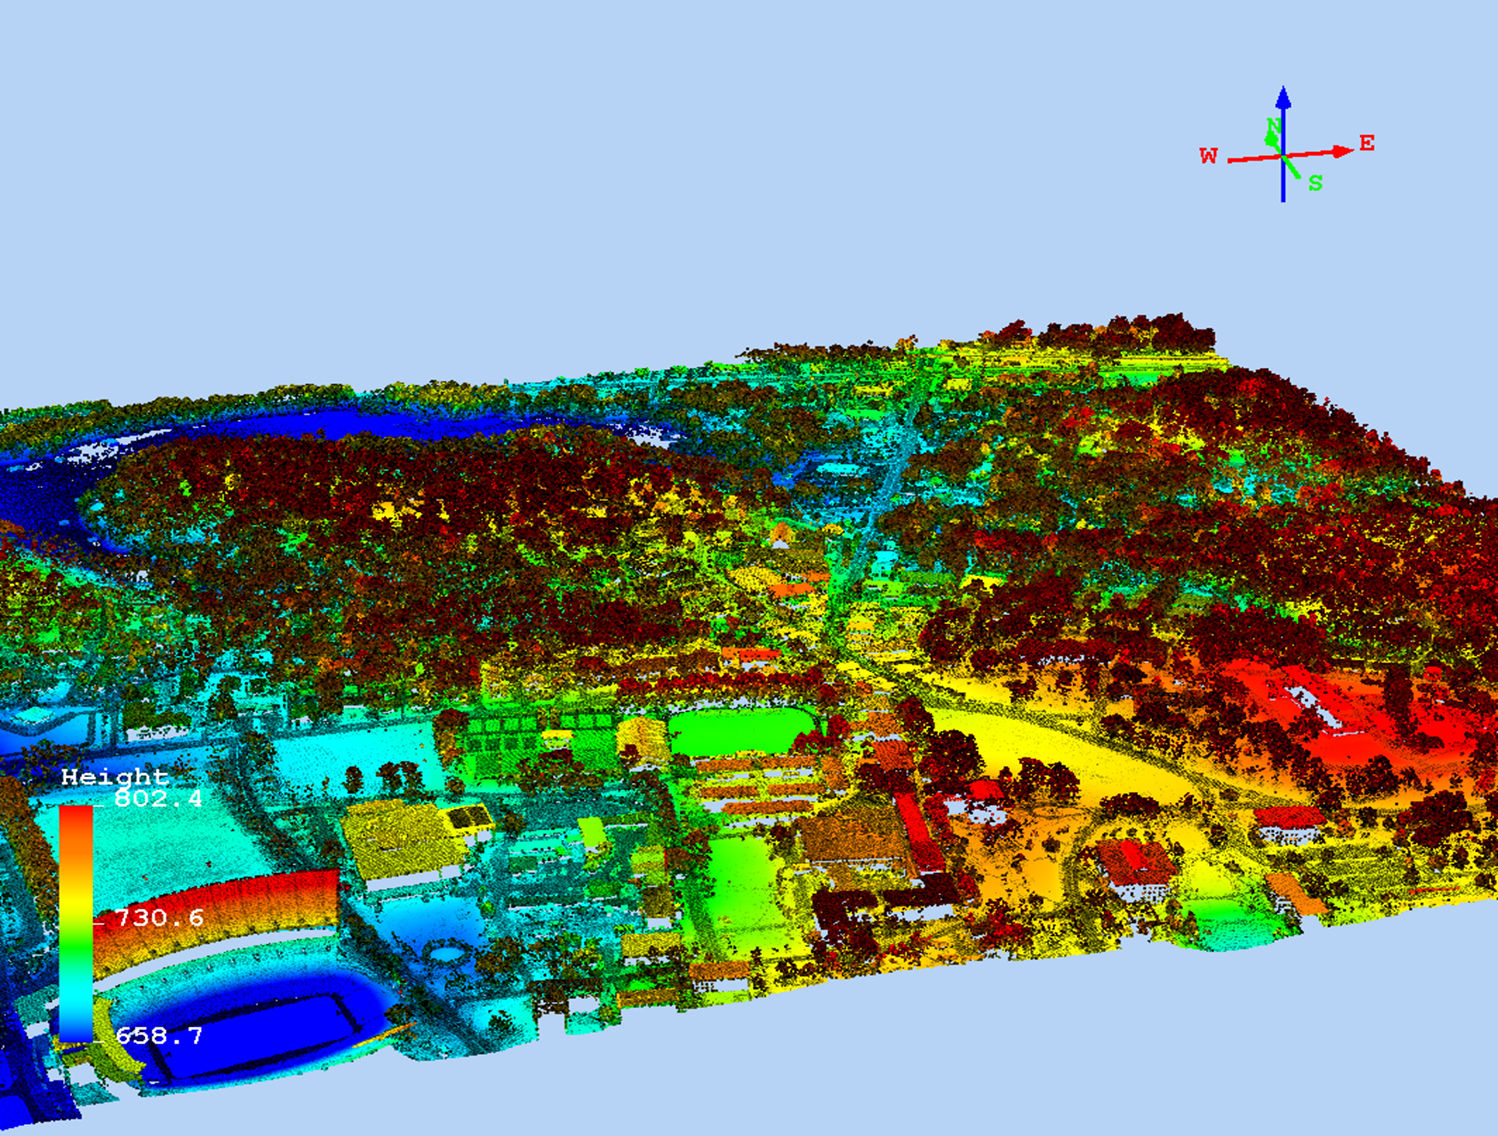 LiDAR data for the Clemson University campus processed by Dr. Chris Post, Clemson, SC